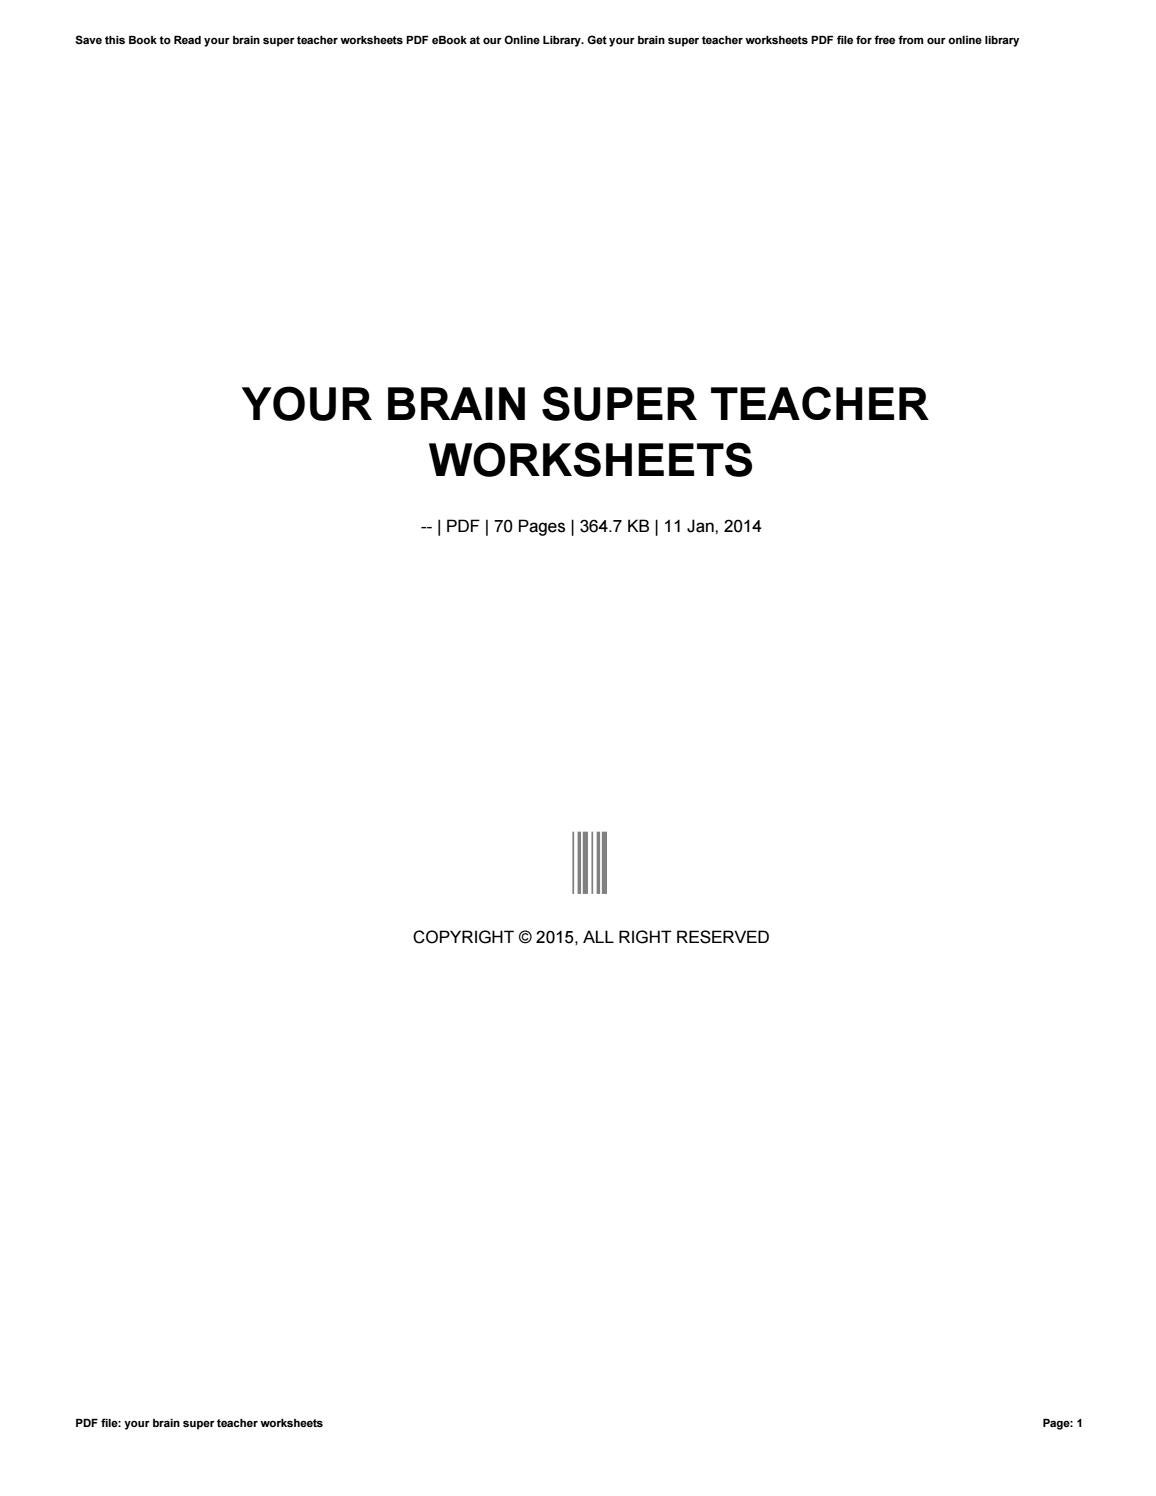 Your brain super teacher worksheets by crymail278 - issuu